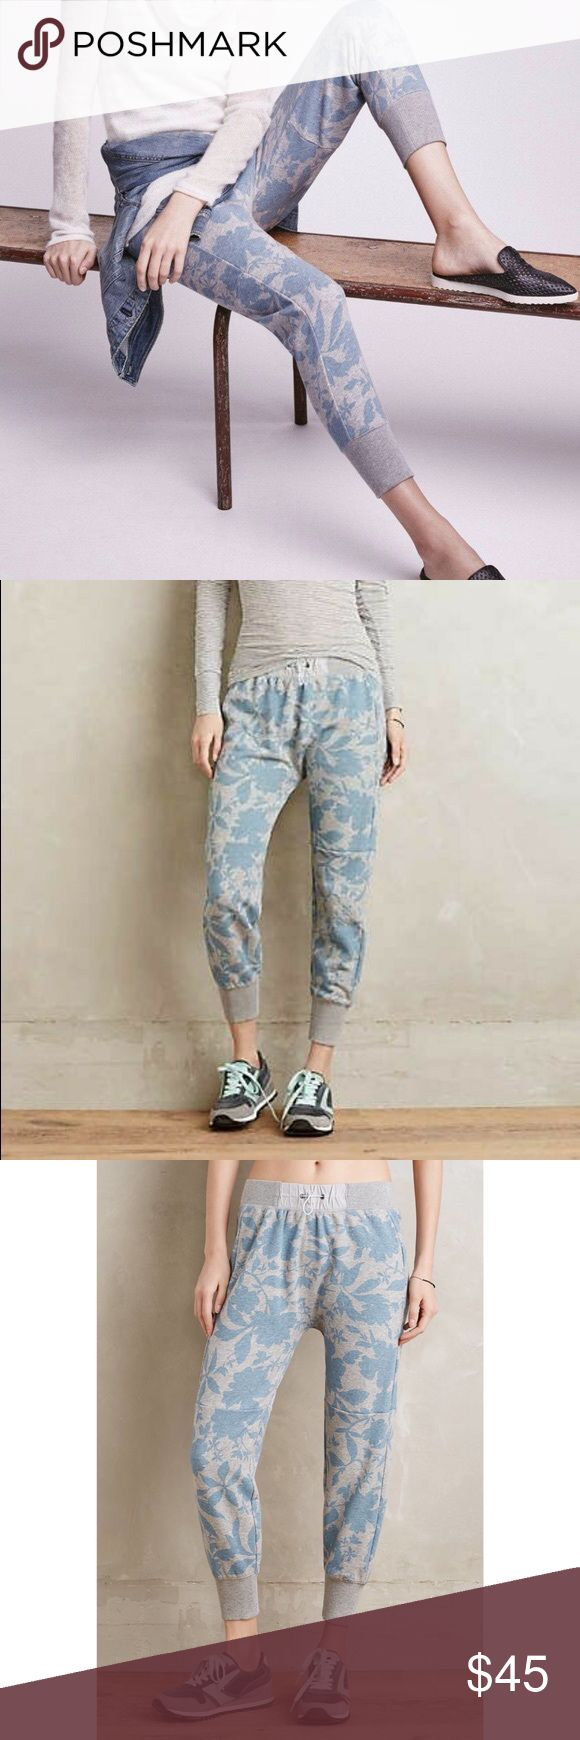 """Anthro Saturday Sunday Right Field Joggers Adorable joggers. No flaws except tag has come undone on one side. Waist 13"""" unstretched, Rise 12"""", inseam 24.5"""" Anthropologie Pants Track Pants & Joggers"""